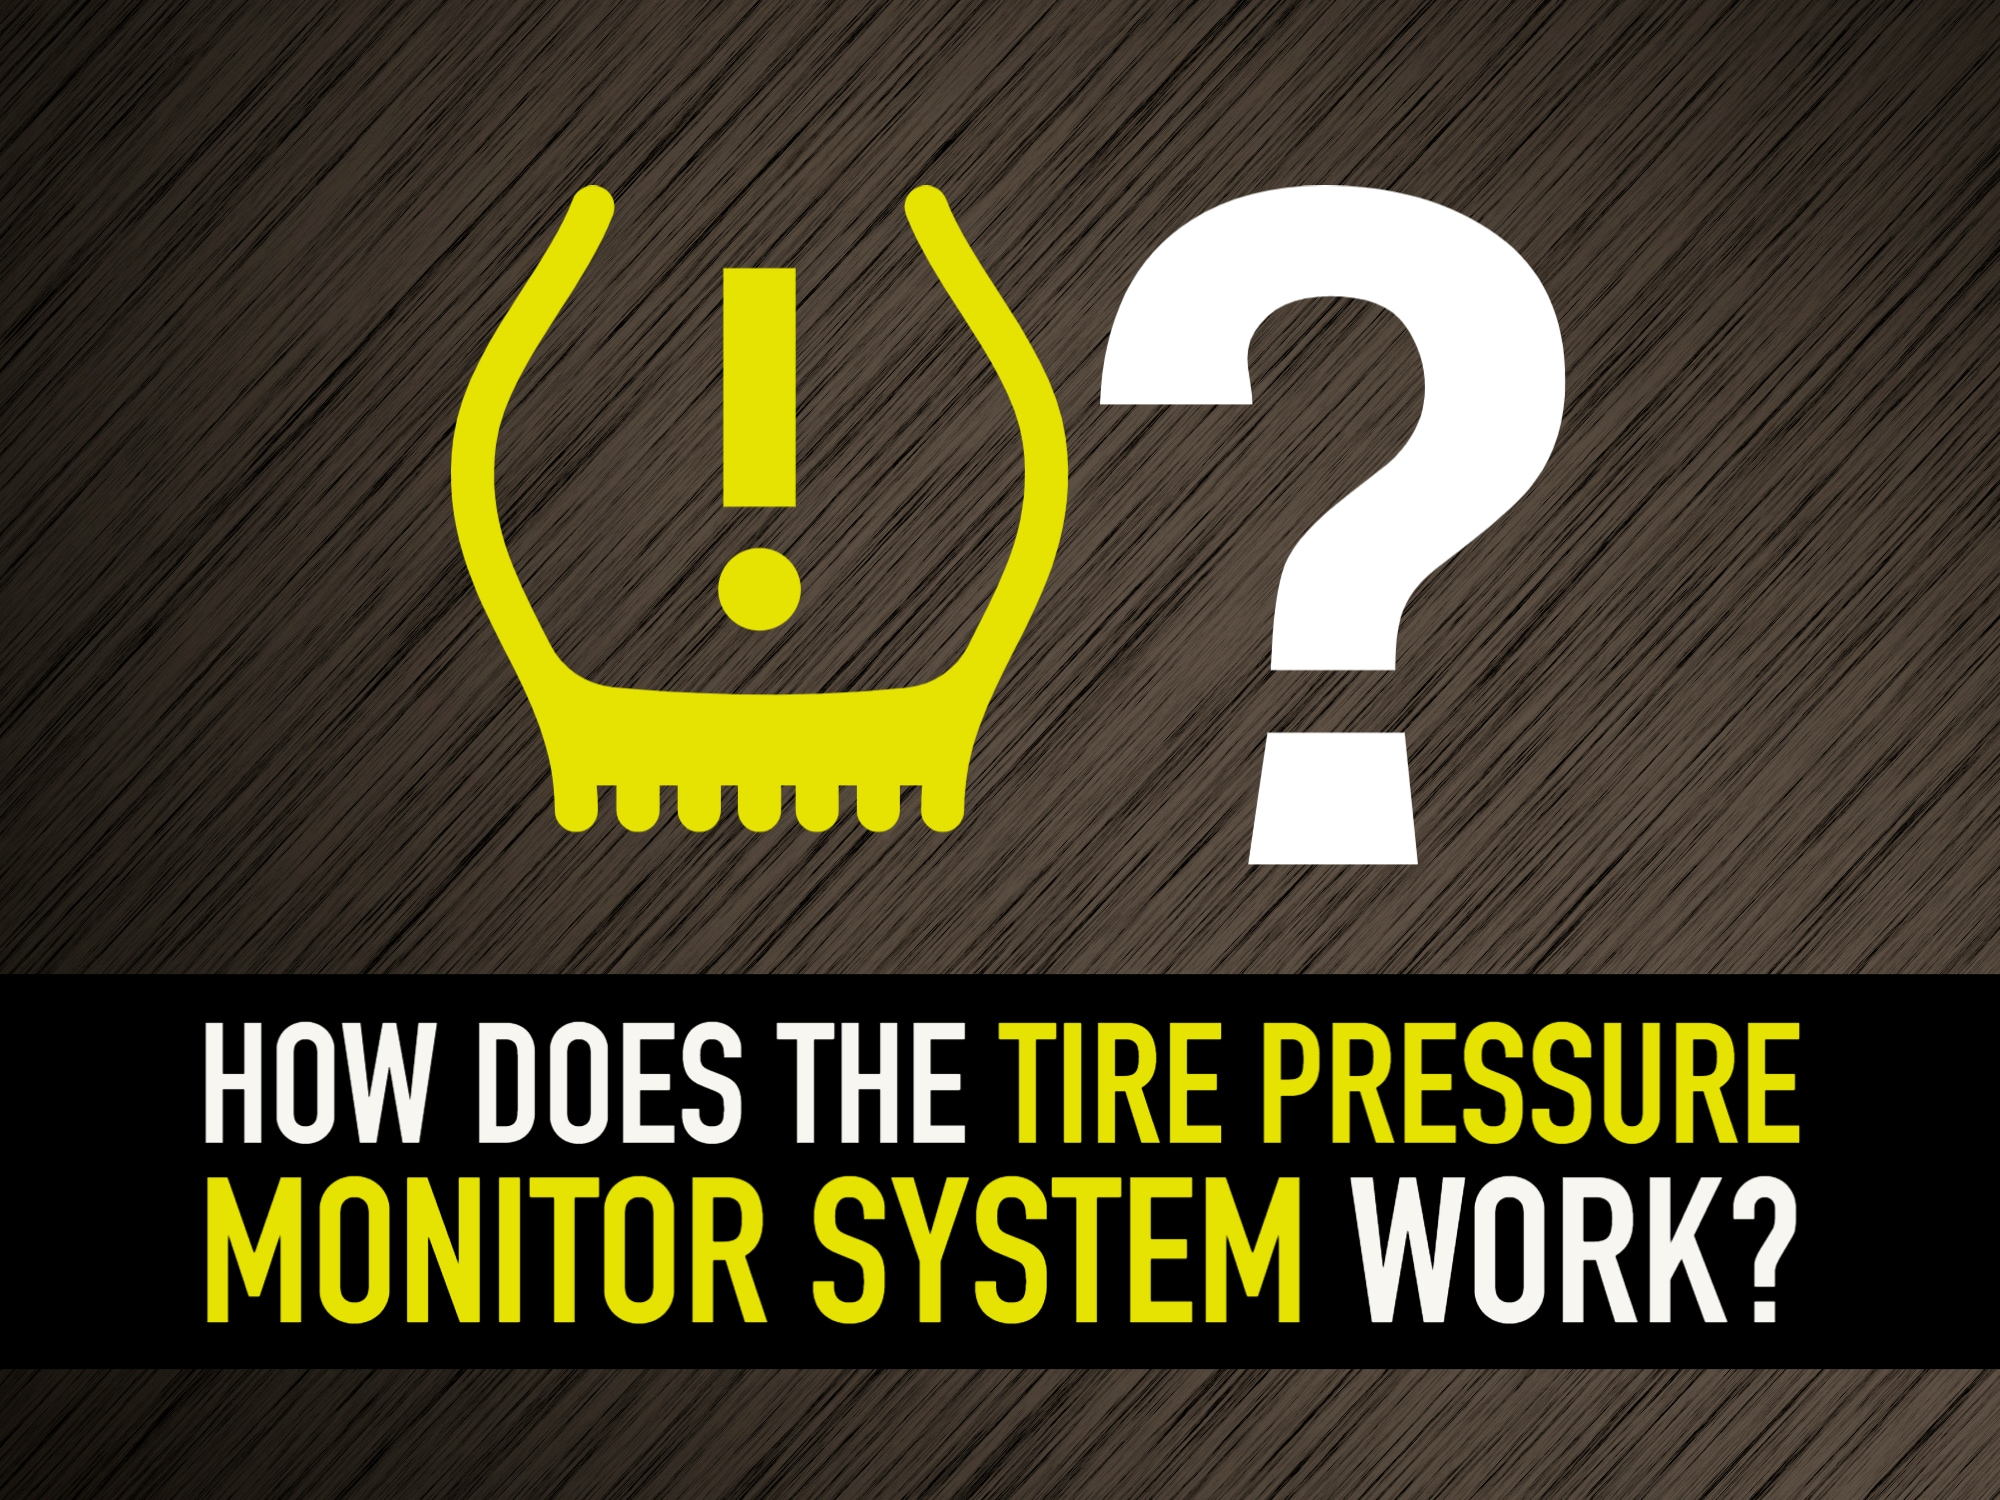 """tire pressure monitor light icon next to question mark with """"How Does the Tire Pressure Monitor System work?"""" underneath"""